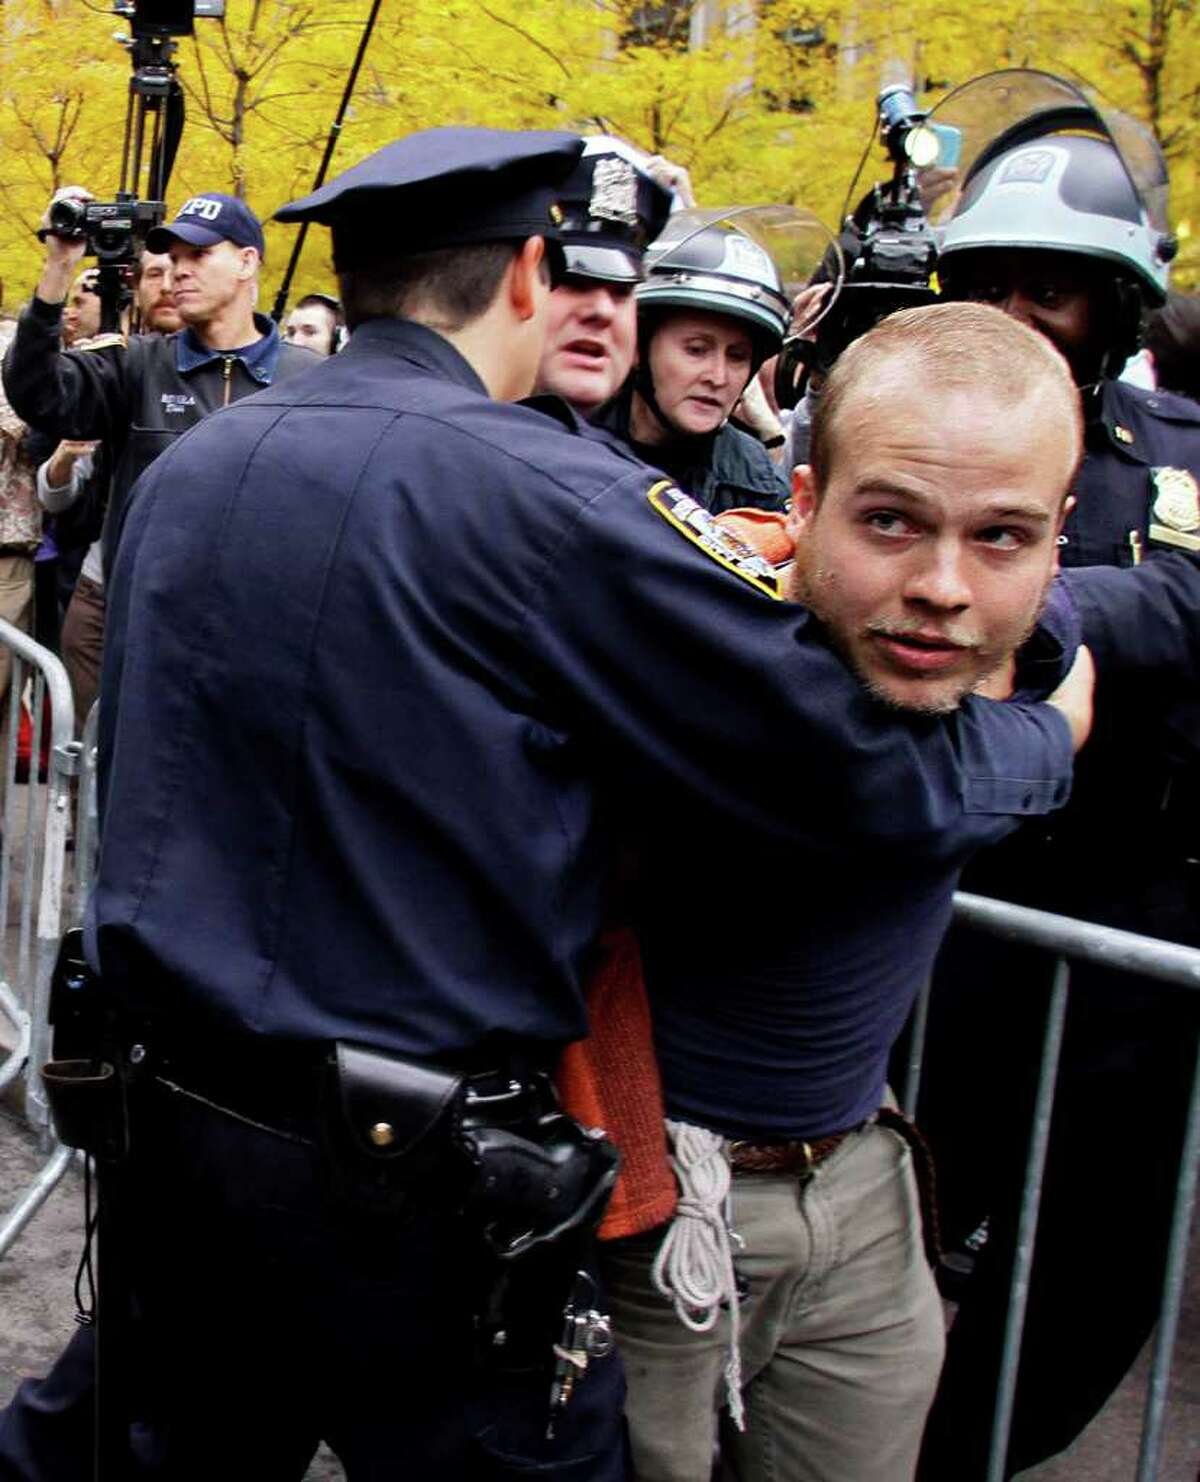 Police arrest an Occupy Wall Street protester at Zuccotti Park on Tuesday, Nov. 15, 2011 in New York. After an early police raid removing protesters, hundreds returned to Zuccotti Park carrying photocopies of a court order they say gives them the right to return there. The National Lawyers Guild obtained a court order allowing the protesters to return with their tents to the park, where they have camped for two months. The guild said the injunction prevents the city from enforcing park rules on the protesters.